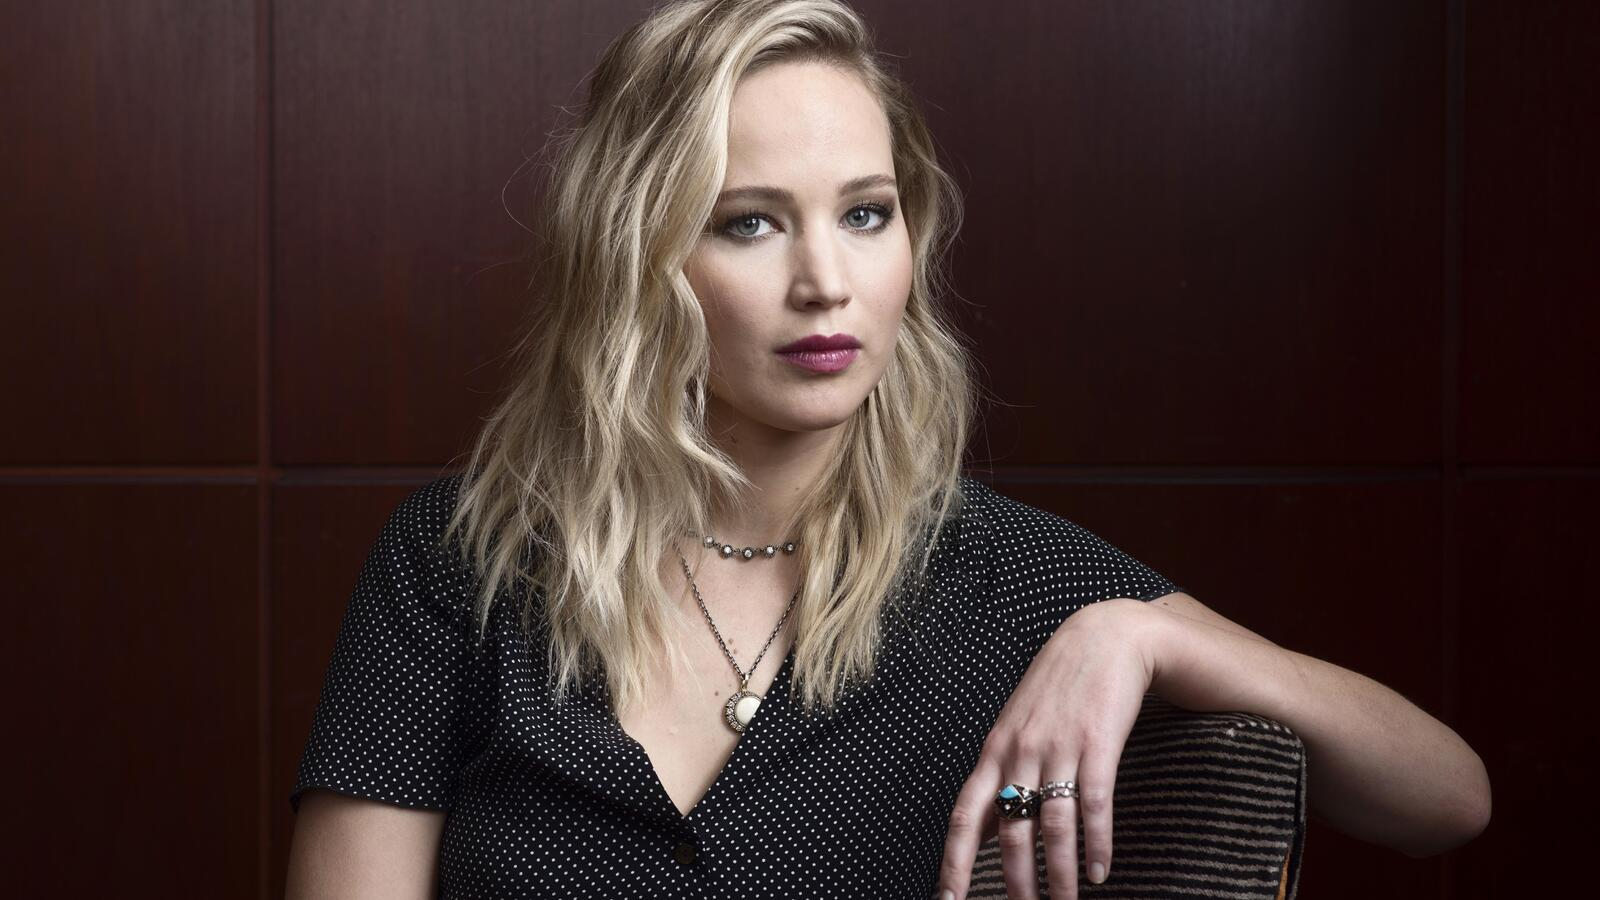 jennifer-lawrence-2019-5k-iq.jpg